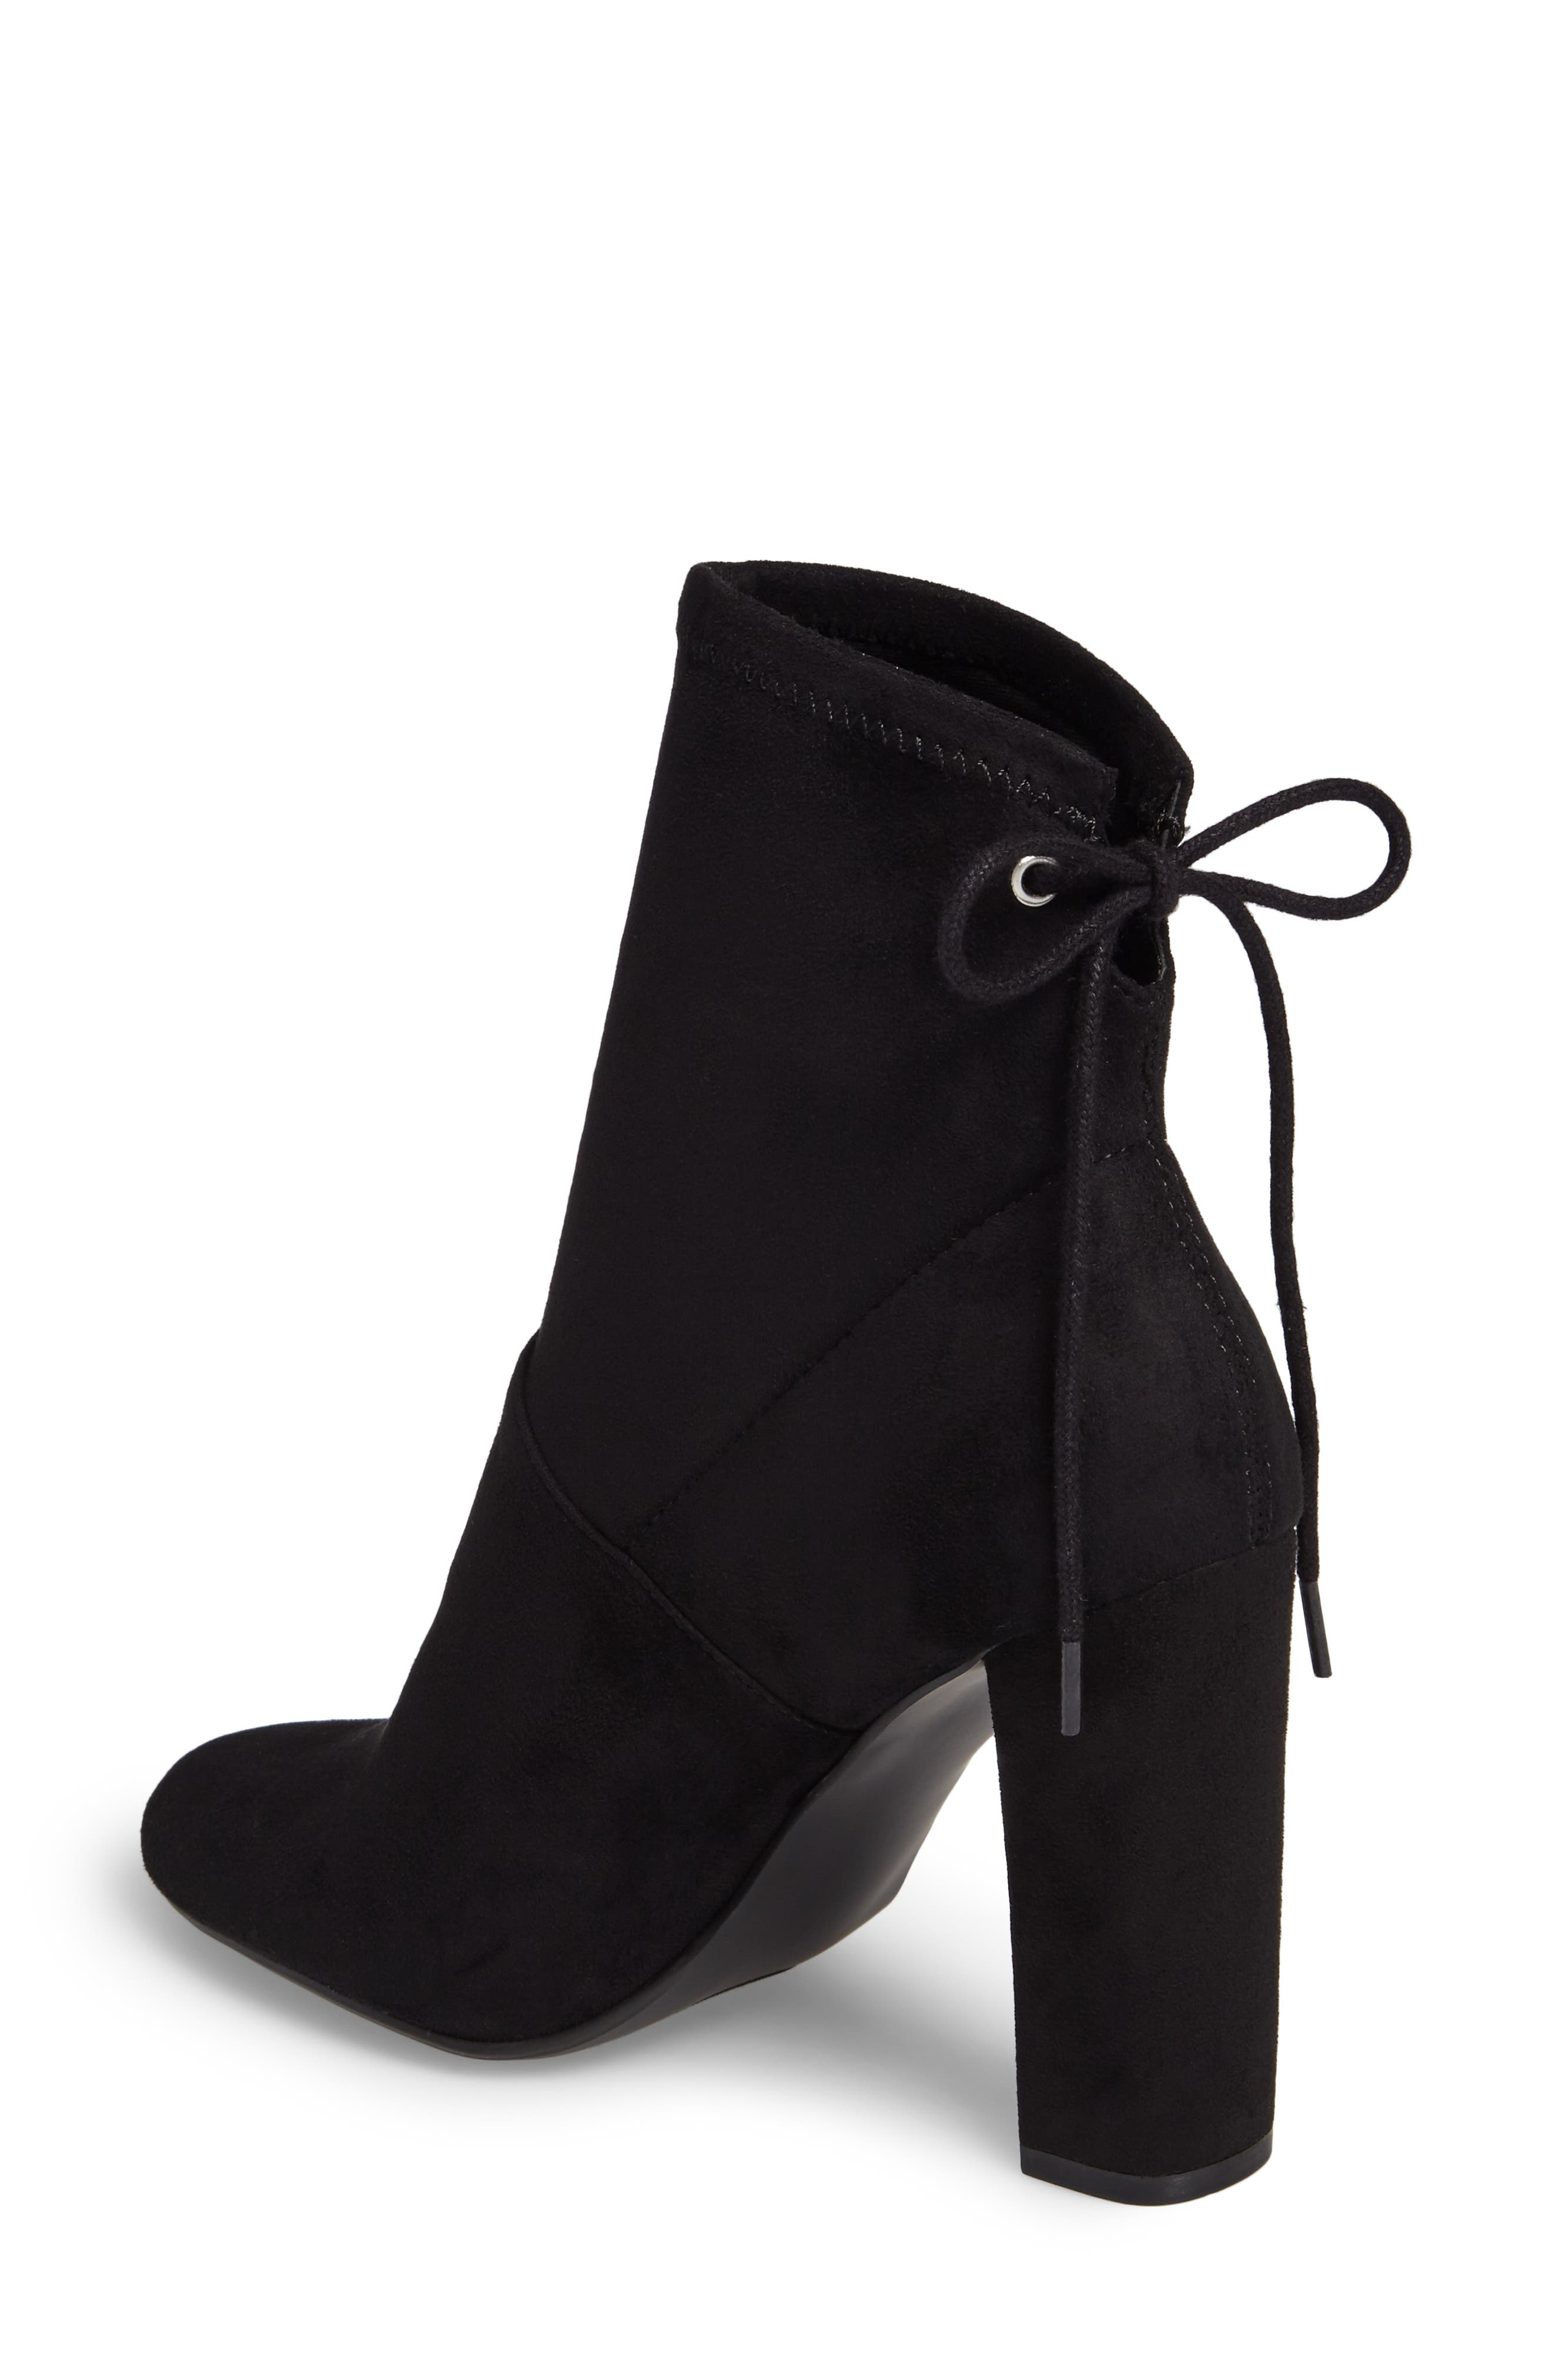 Enact Tie-Back Bootie,                             Alternate thumbnail 2, color,                             Black